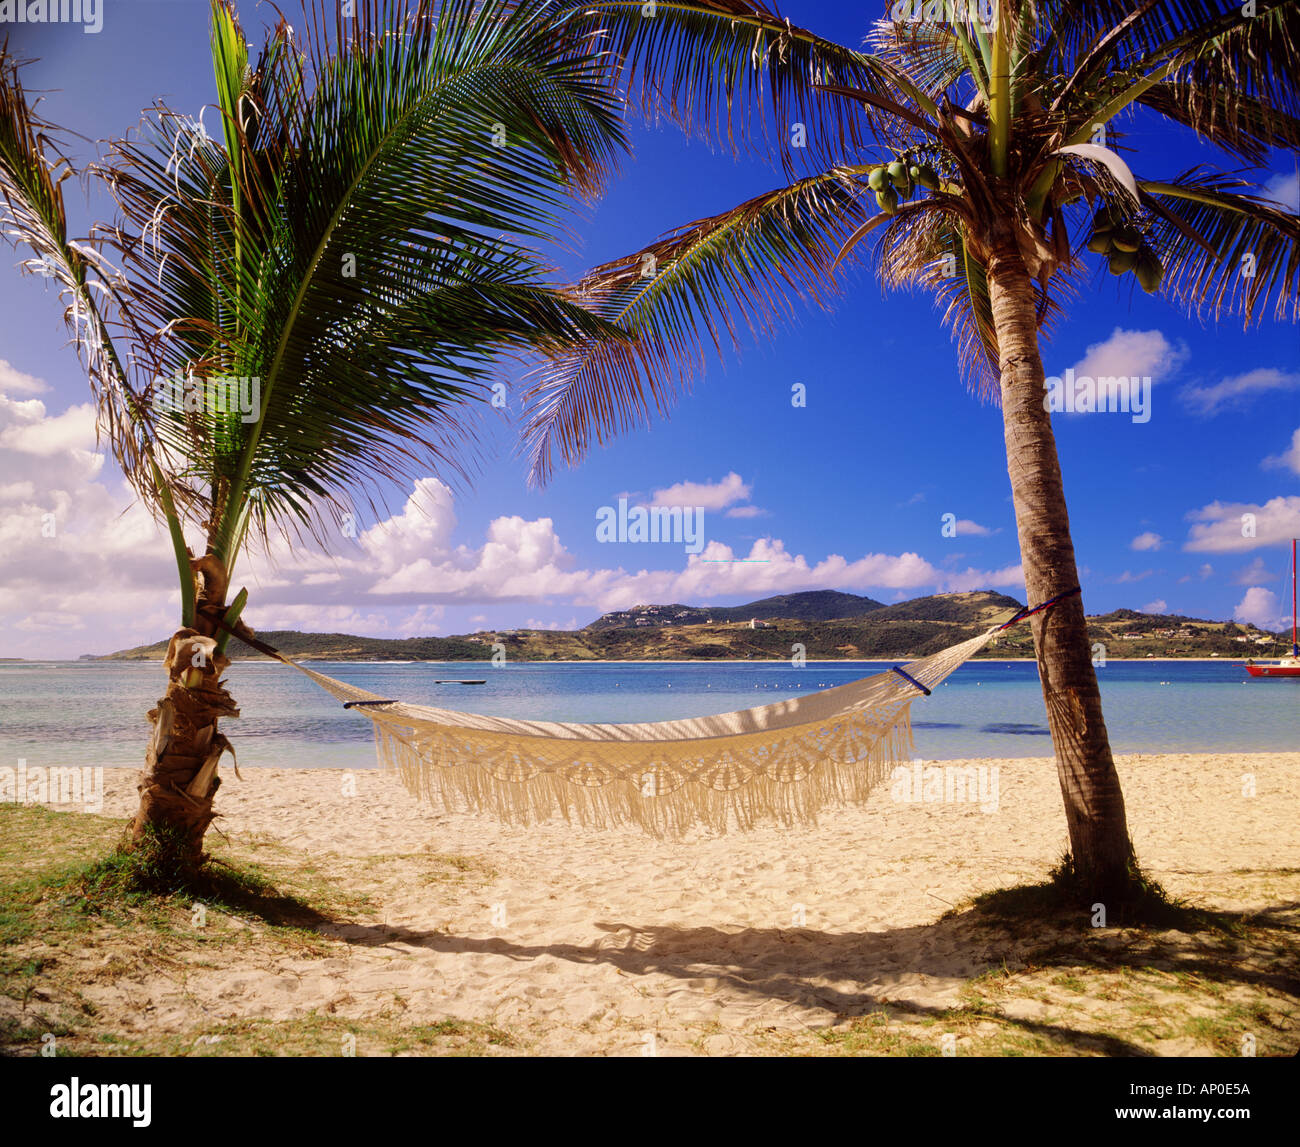 Hammock sways in the breeze on the Caribbean beach at Baie De L Embouchure St Martin - Stock Image